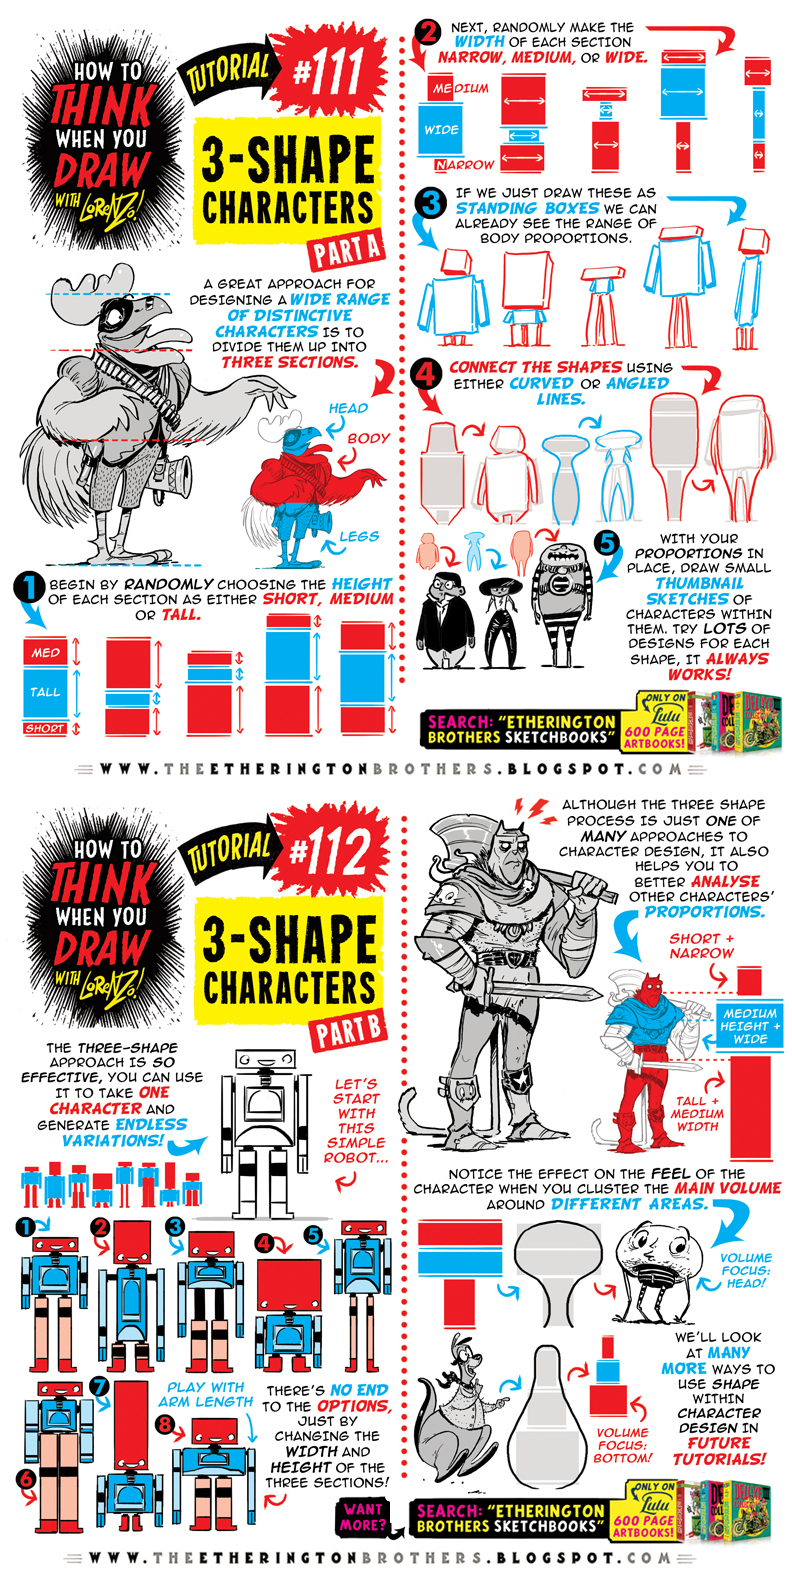 How to THINK when you draw 3-SHAPE CHARACTERS! by